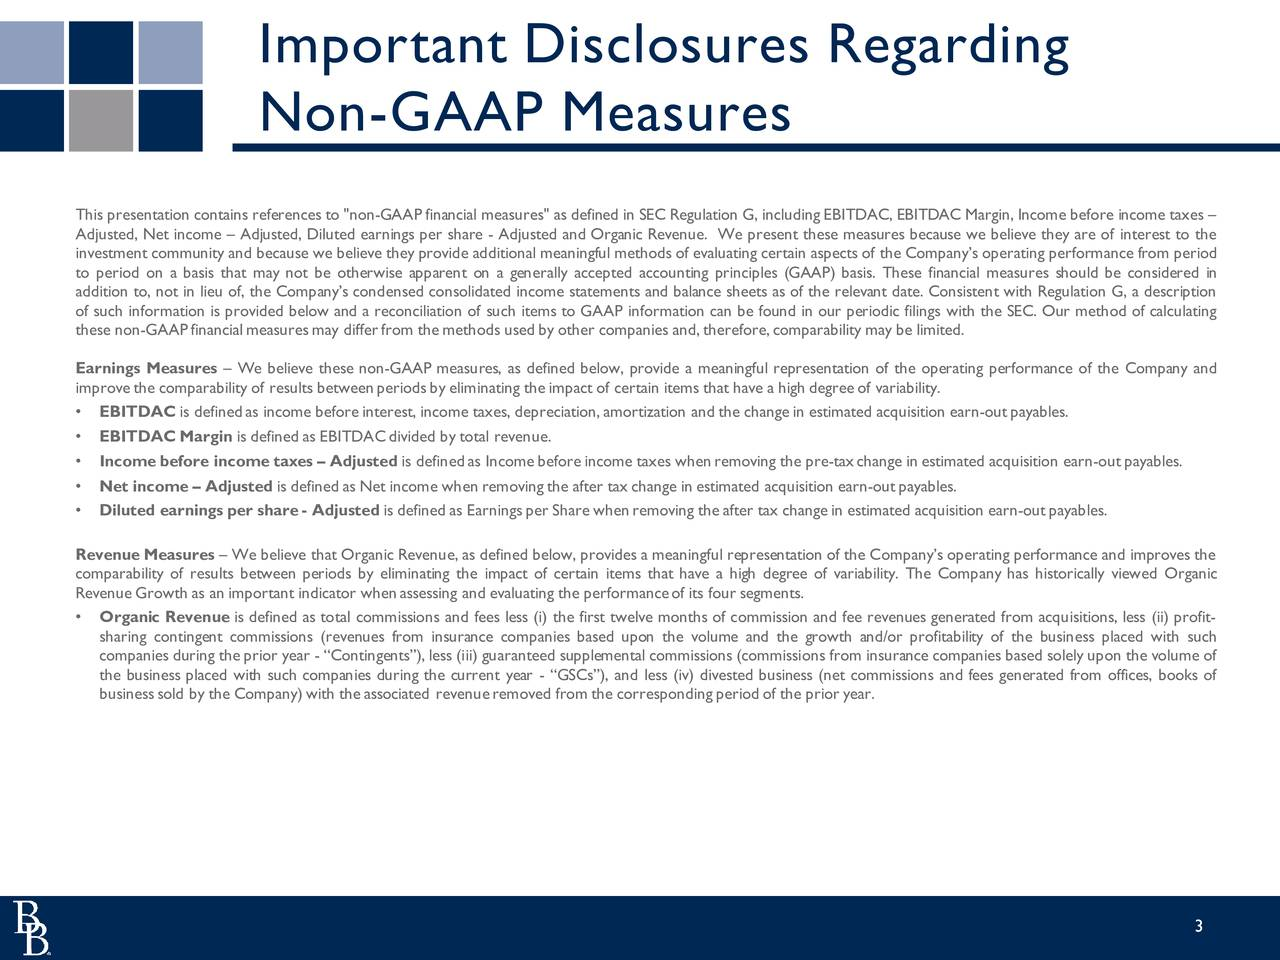 """Non-GAAP Measures This presentation contains references to """"non-GAAP financial measures"""" as defined in SEC Regulation G, including EBITDAC, EBITDAC Margin, Income before income taxes Adjusted, Net income  Adjusted, Diluted earnings per share - Adjusted and Organic Revenue. We present these measures because we believe they are of interest to the investment community and because we believe they provide additional meaningful methods of evaluating certain aspects of the Companys operating performance from period to period on a basis that may not be otherwise apparent on a generally accepted accounting principles (GAAP) basis. These financial measures should be considered in addition to, not in lieu of, the Companys condensed consolidated income statements and balance sheets as of the relevant date. Consistent with Regulation G, a description of such information is provided below and a reconciliation of such items to GAAP information can be found in our periodic filings with the SEC. Our method of calculating these non-GAAPfinancial measuresmay differfrom the methods used by other companies and,therefore, comparability may be limited. Earnings Measures  We believe these non-GAAP measures, as defined below, provide a meaningful representation of the operating performance of the Company and improve the comparability of results betweenperiodsby eliminating the impact of certain items that have a high degree of variability. EBITDAC is definedas income before interest, income taxes, depreciation, amortization and the change in estimated acquisition earn-outpayables. EBITDAC Margin is defined as EBITDACdivided by total revenue. Income before income taxes  Adjusted is definedas Income before income taxes whenremoving the pre-taxchange in estimated acquisition earn-outpayables. Net income  Adjusted is defined as Net income when removing the after tax change in estimated acquisition earn-outpayables. Diluted earnings per share- Adjusted is defined as Earningsper Share whenremovin"""